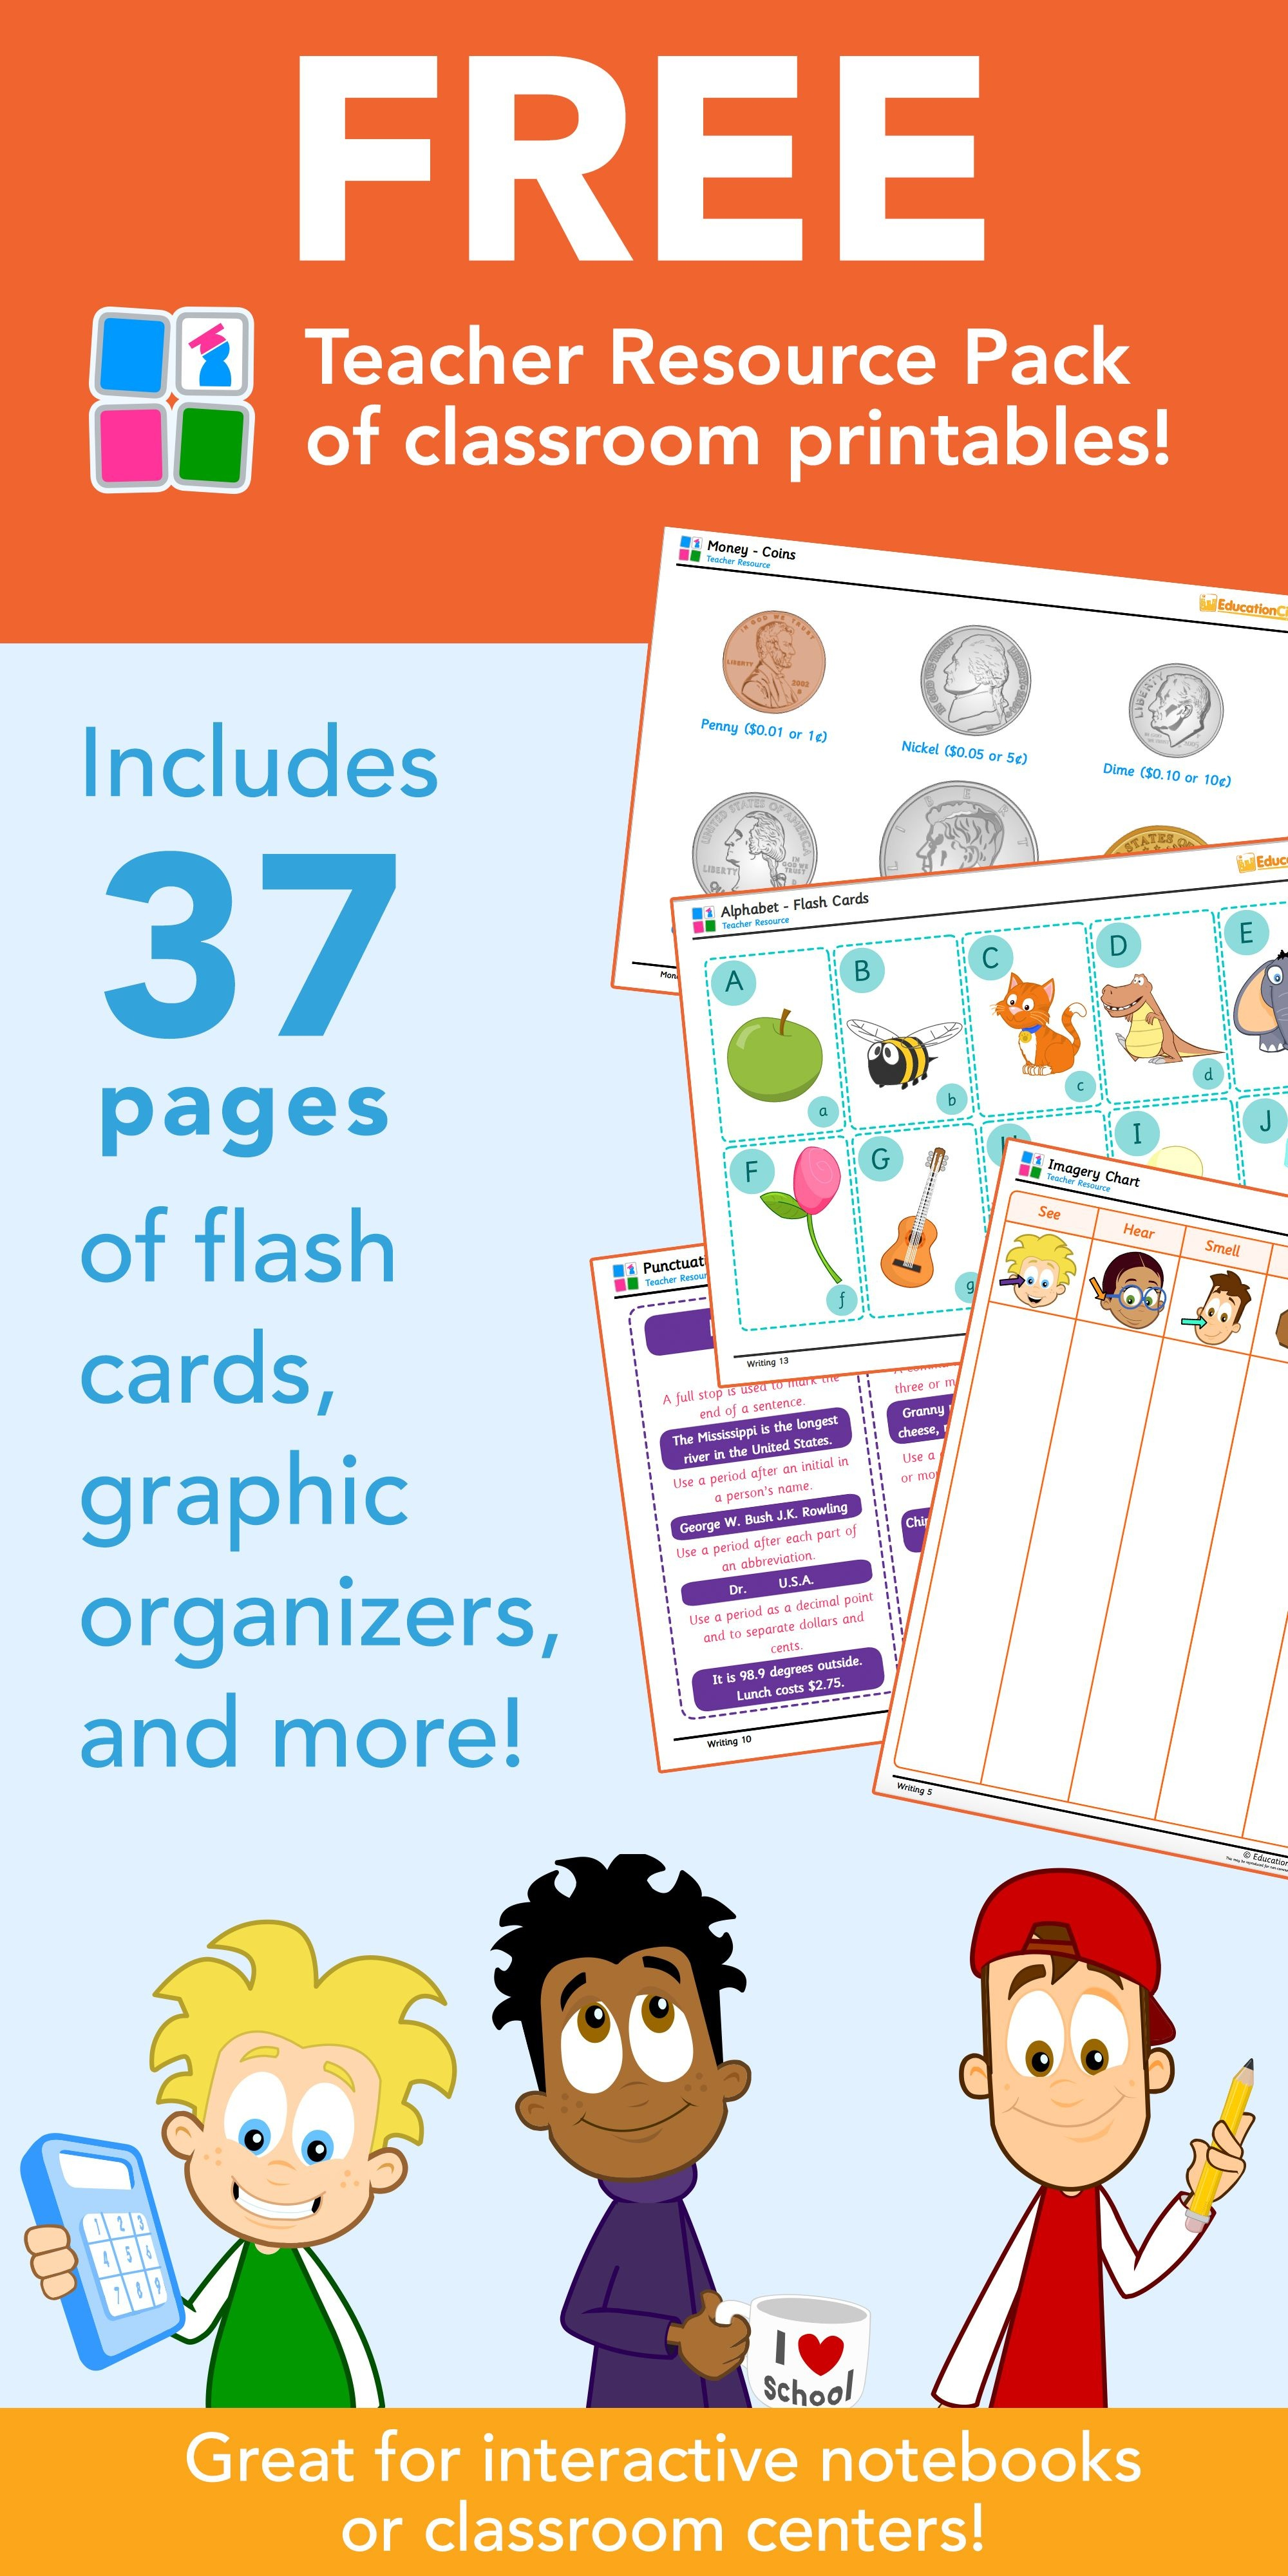 Free Teacher Resources Printables